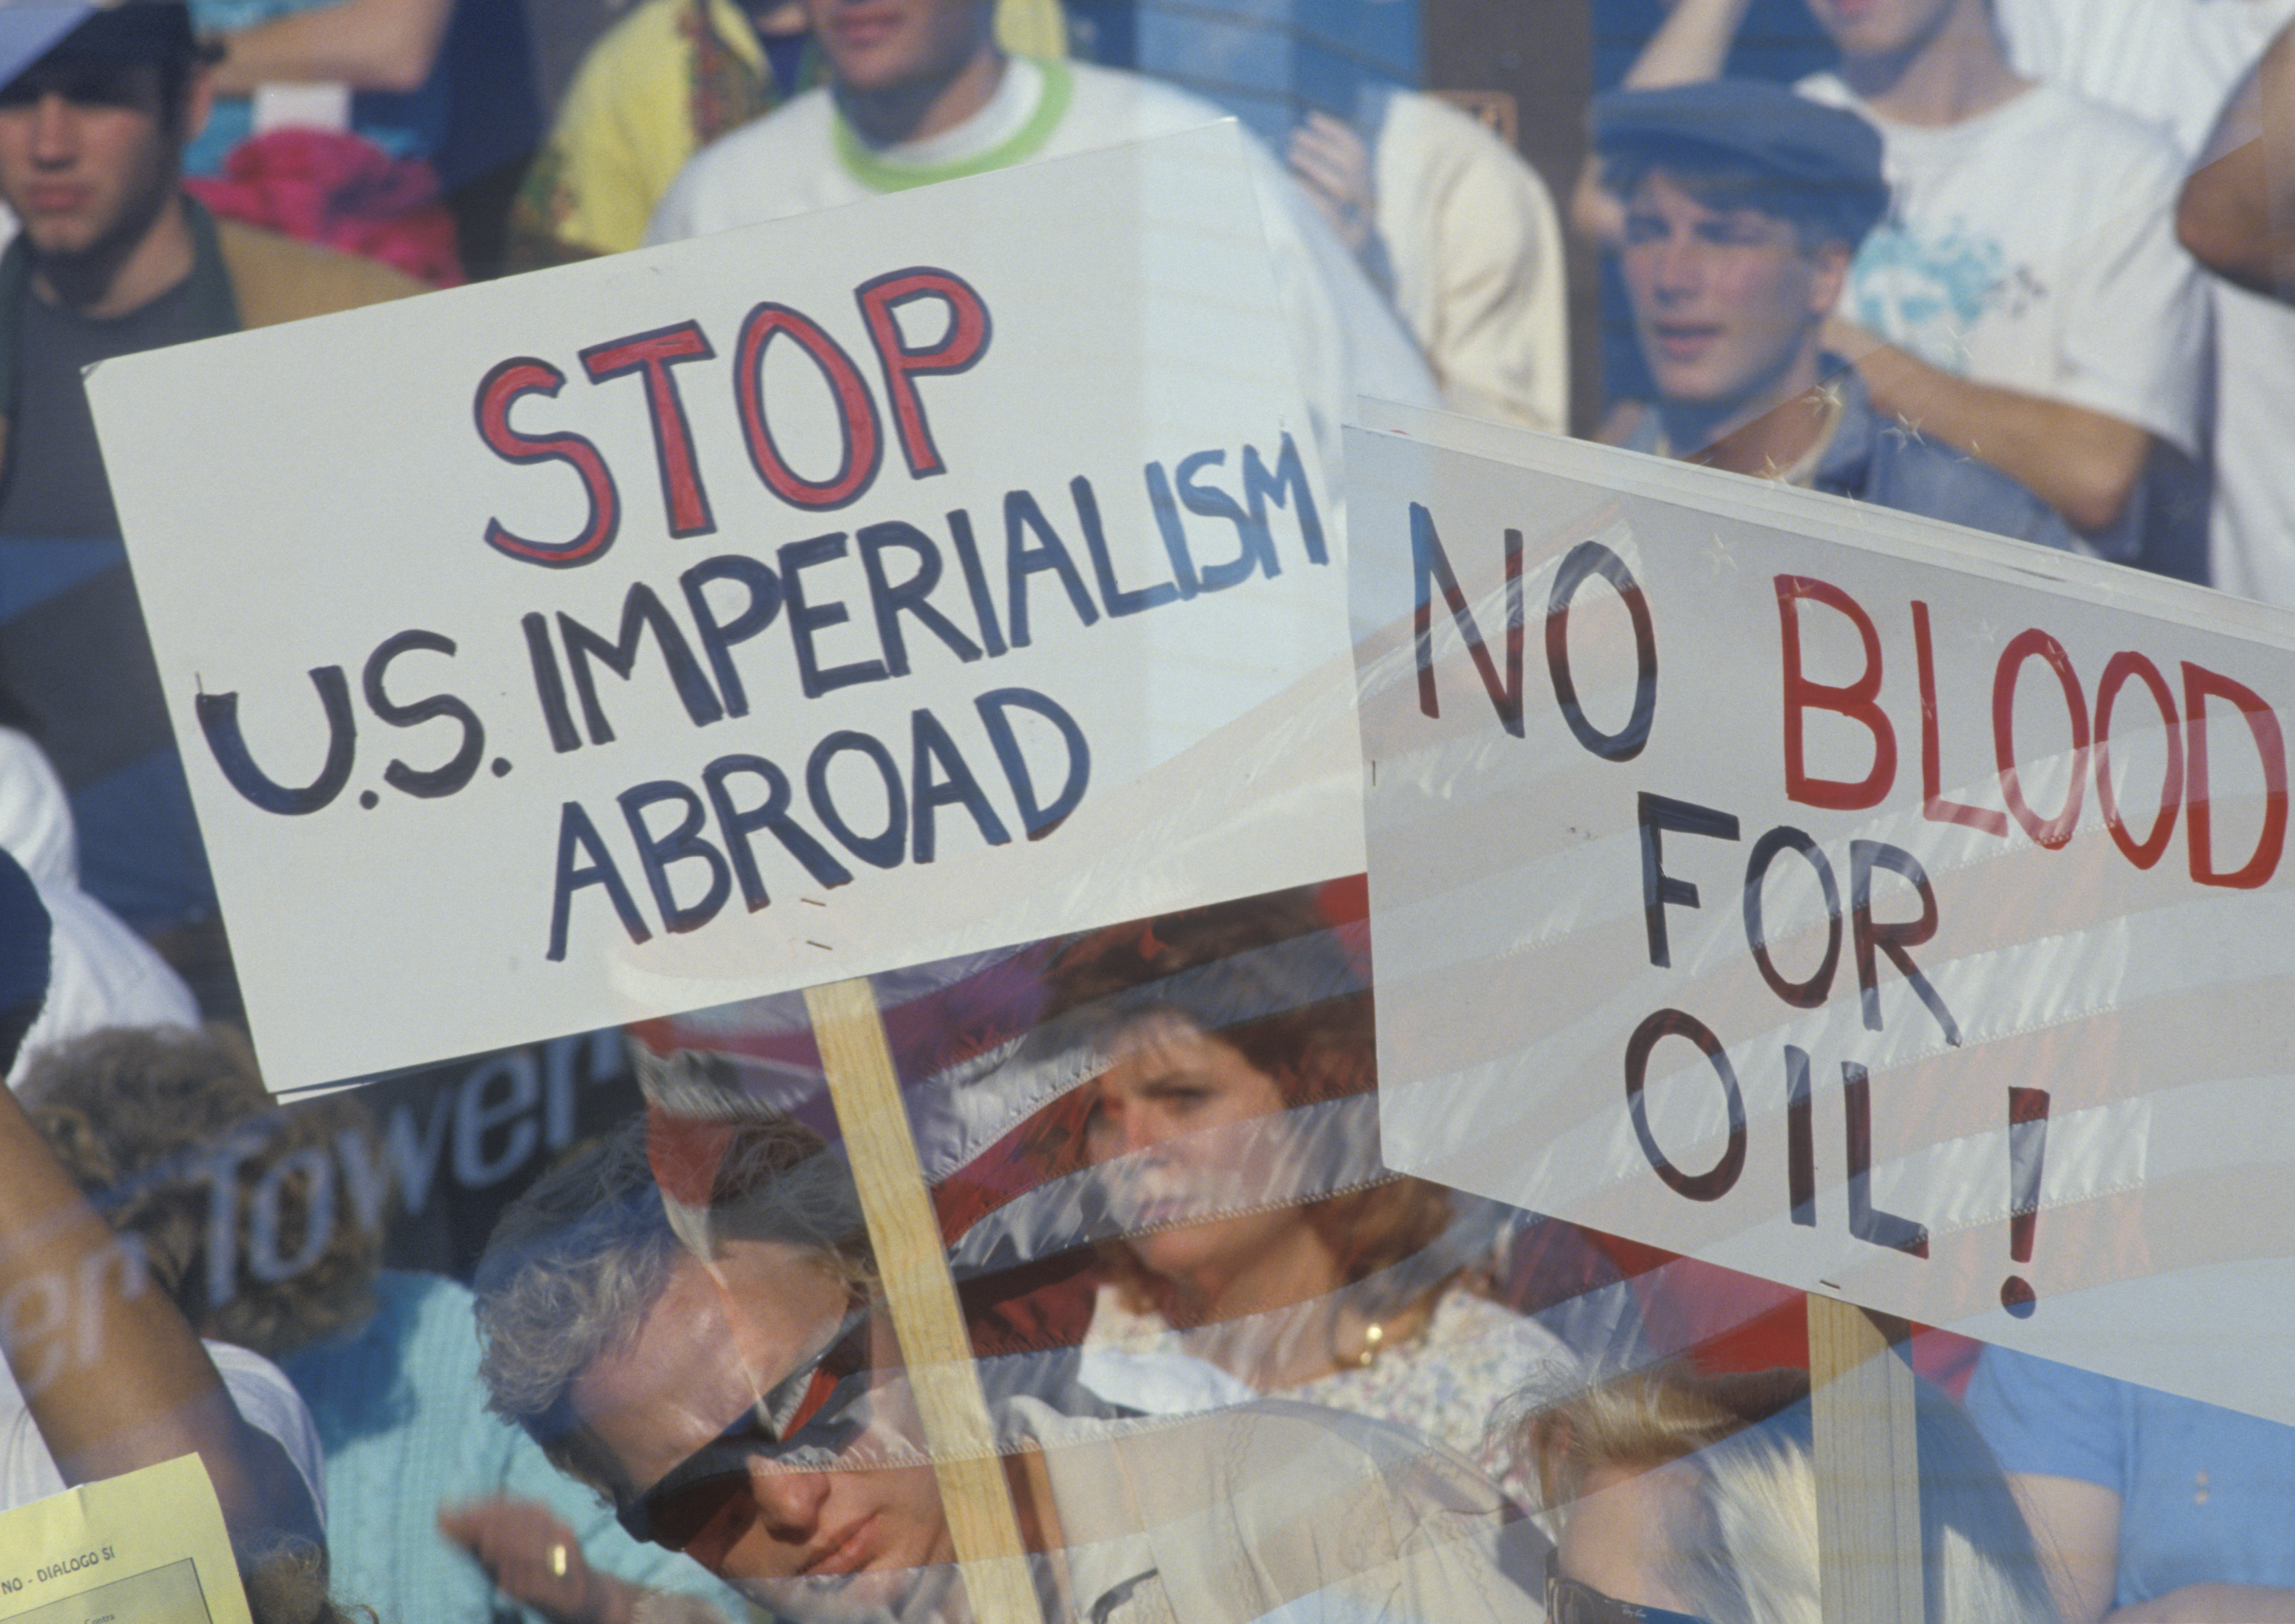 Americans Want Action on Climate; Not War Over Oil With Iran